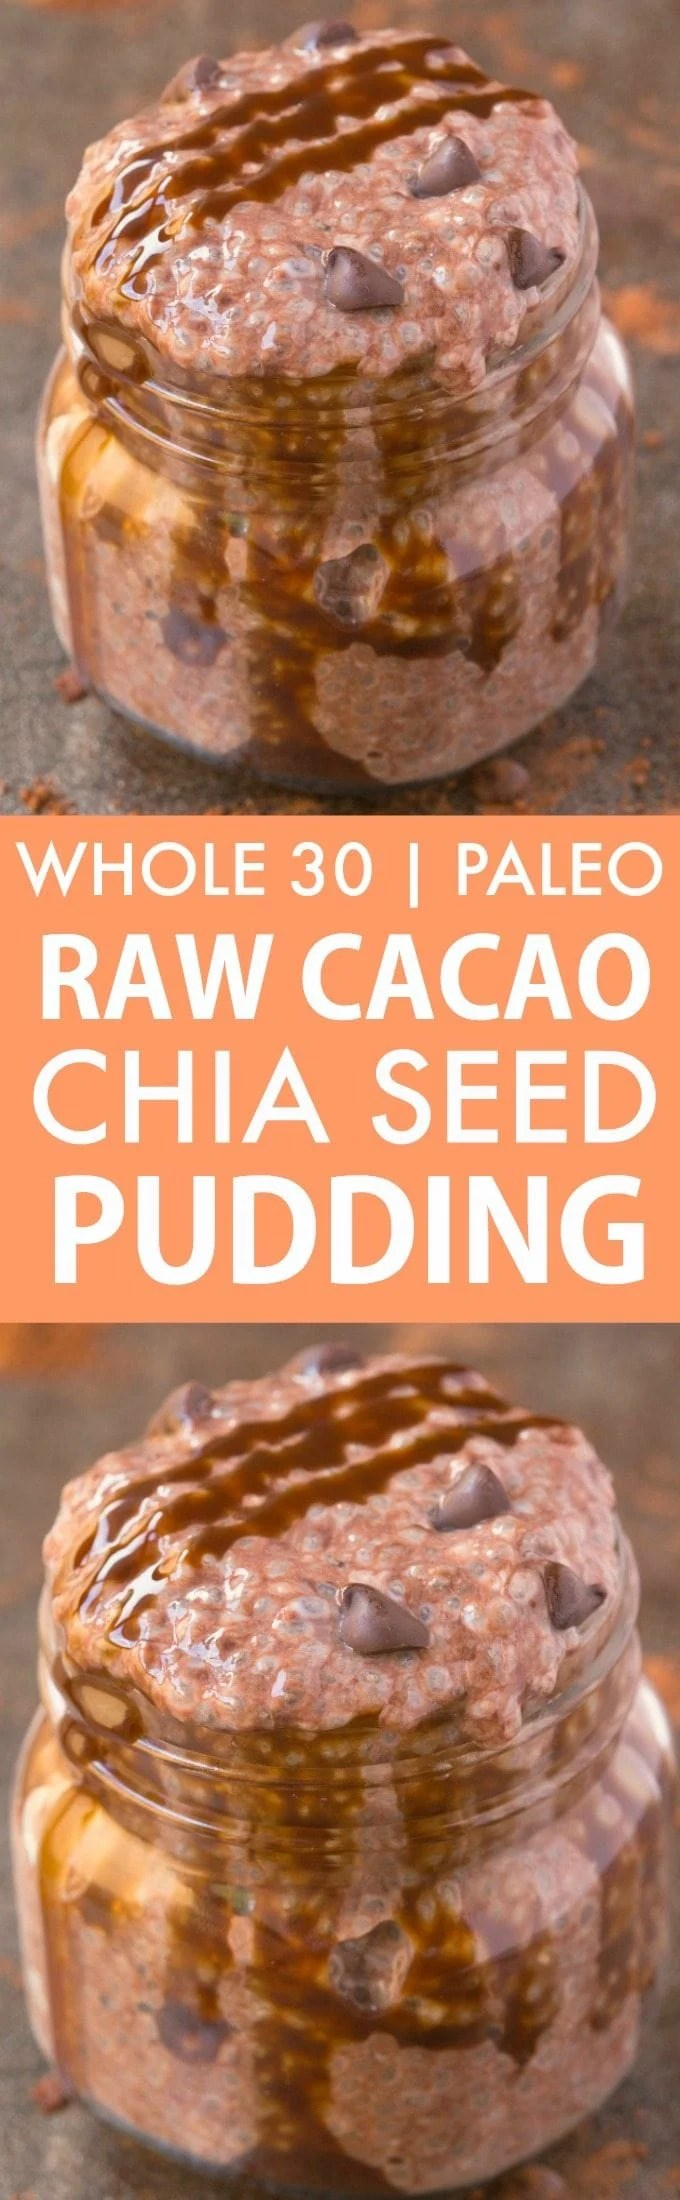 Healthy Raw Cacao Chia Seed Pudding (Whole 30, Paleo, V, GF)- Whole30 approved chia seed pudding- Thick, creamy, satisfying, filling and perfect for breakfast or a snack- Sugar free and dairy free too! {whole 30, paleo, vegan, gluten free recipe}- thebigmansworld.com